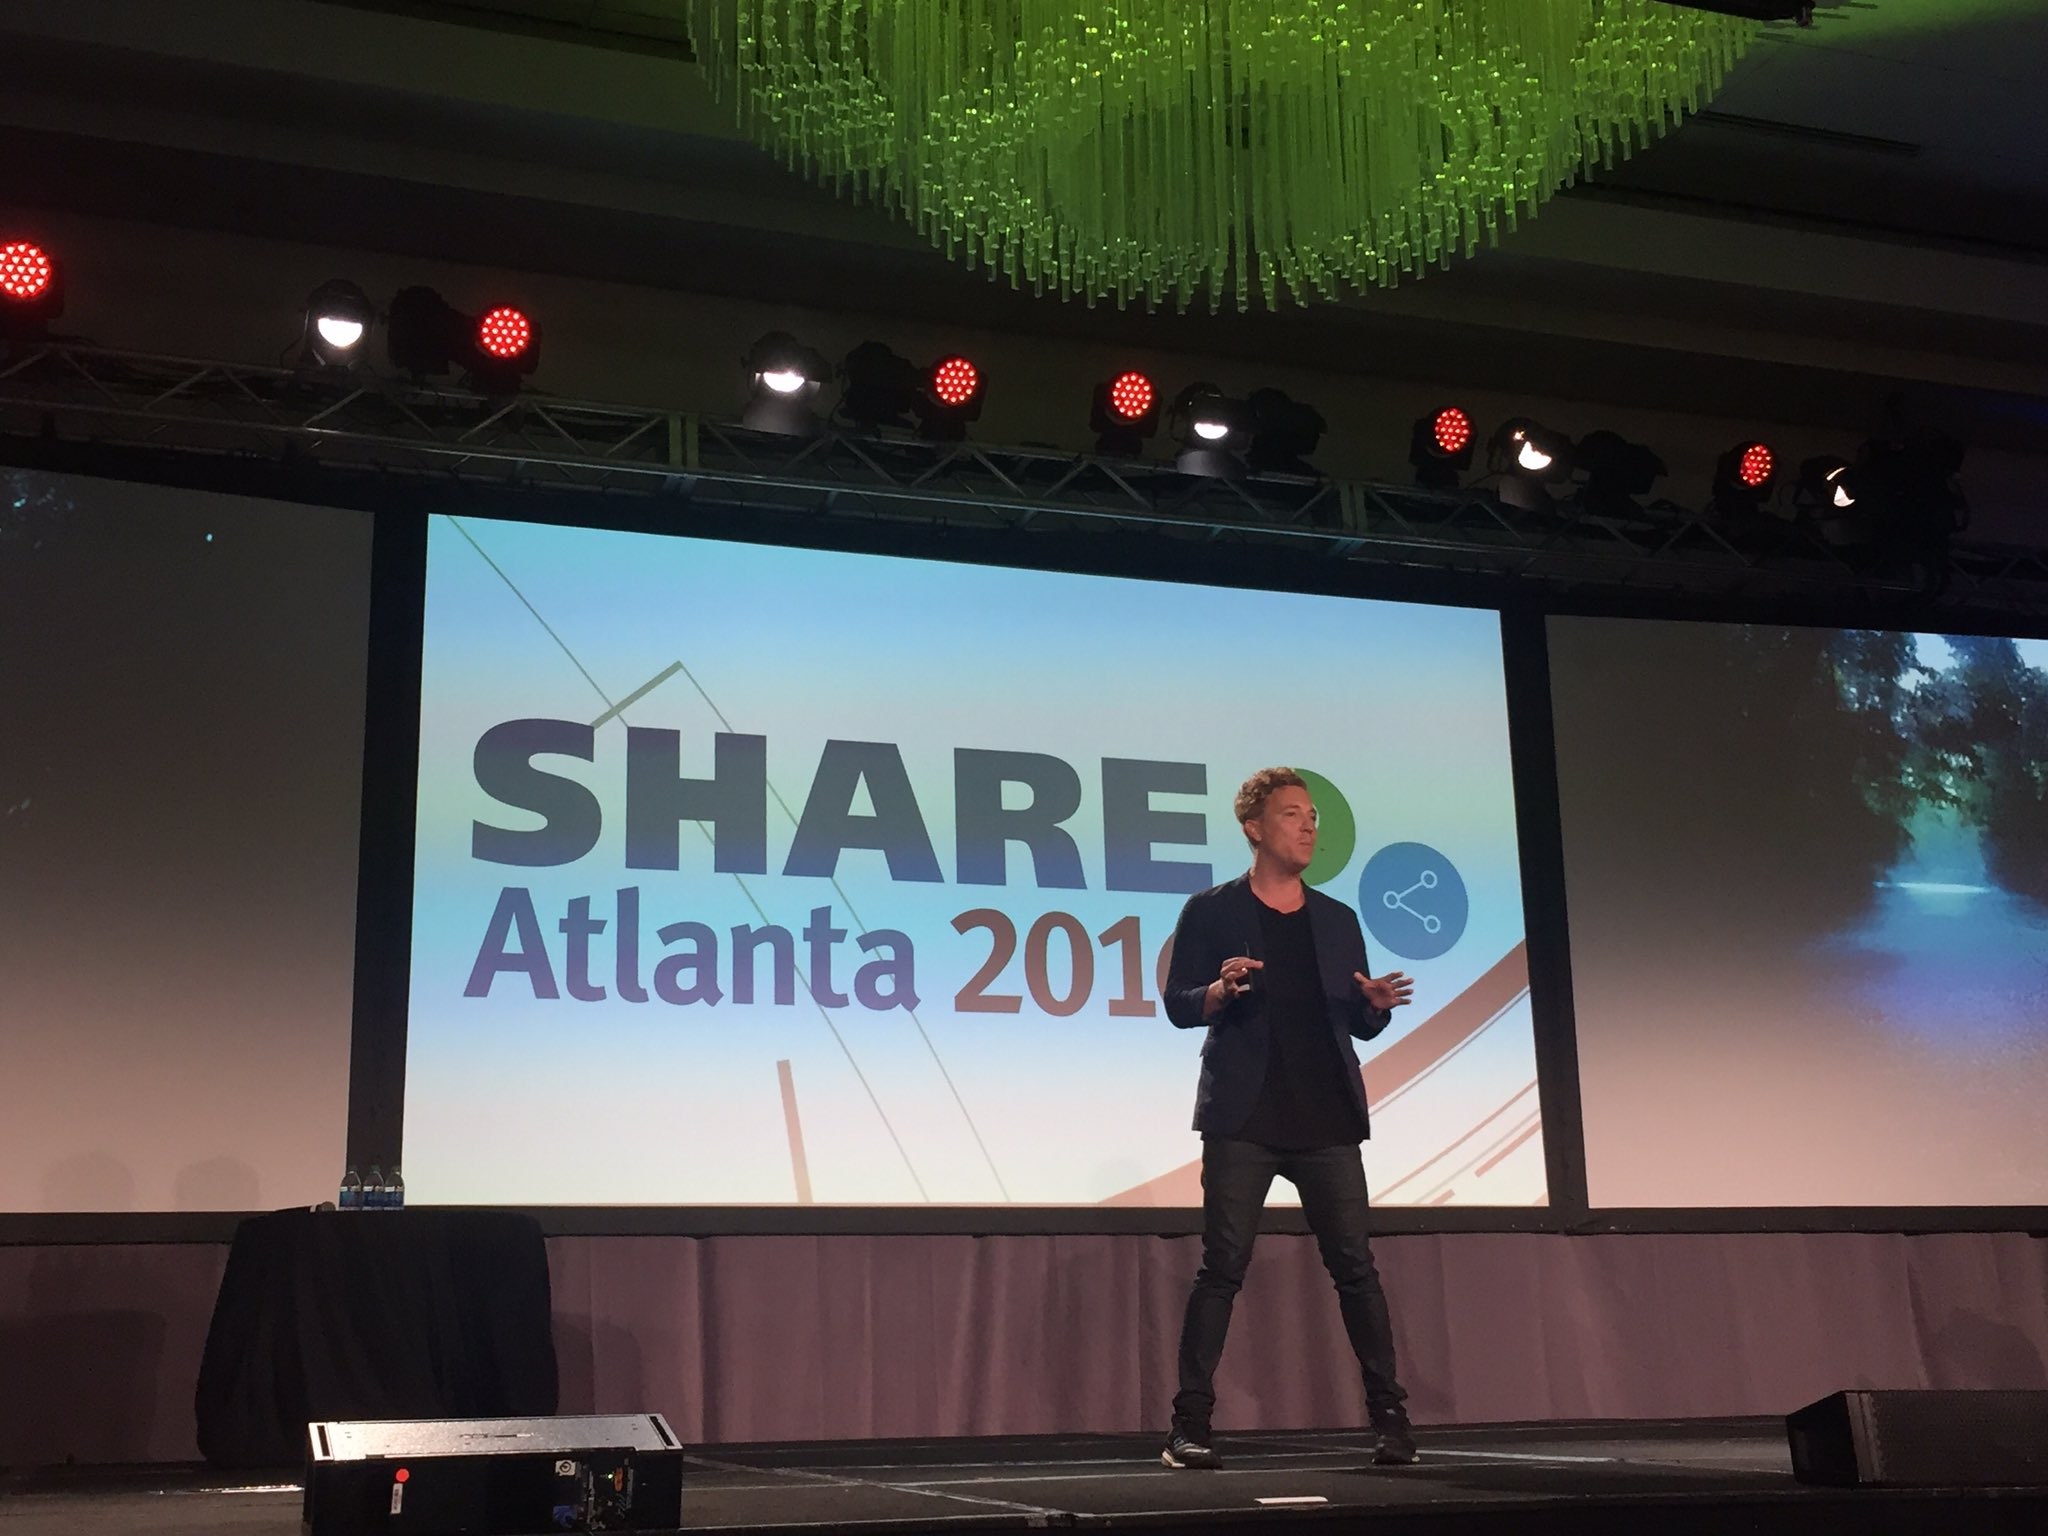 .@shanesnow tricking us with lateral thinking #SHAREatl https://t.co/tK16kiGnlm